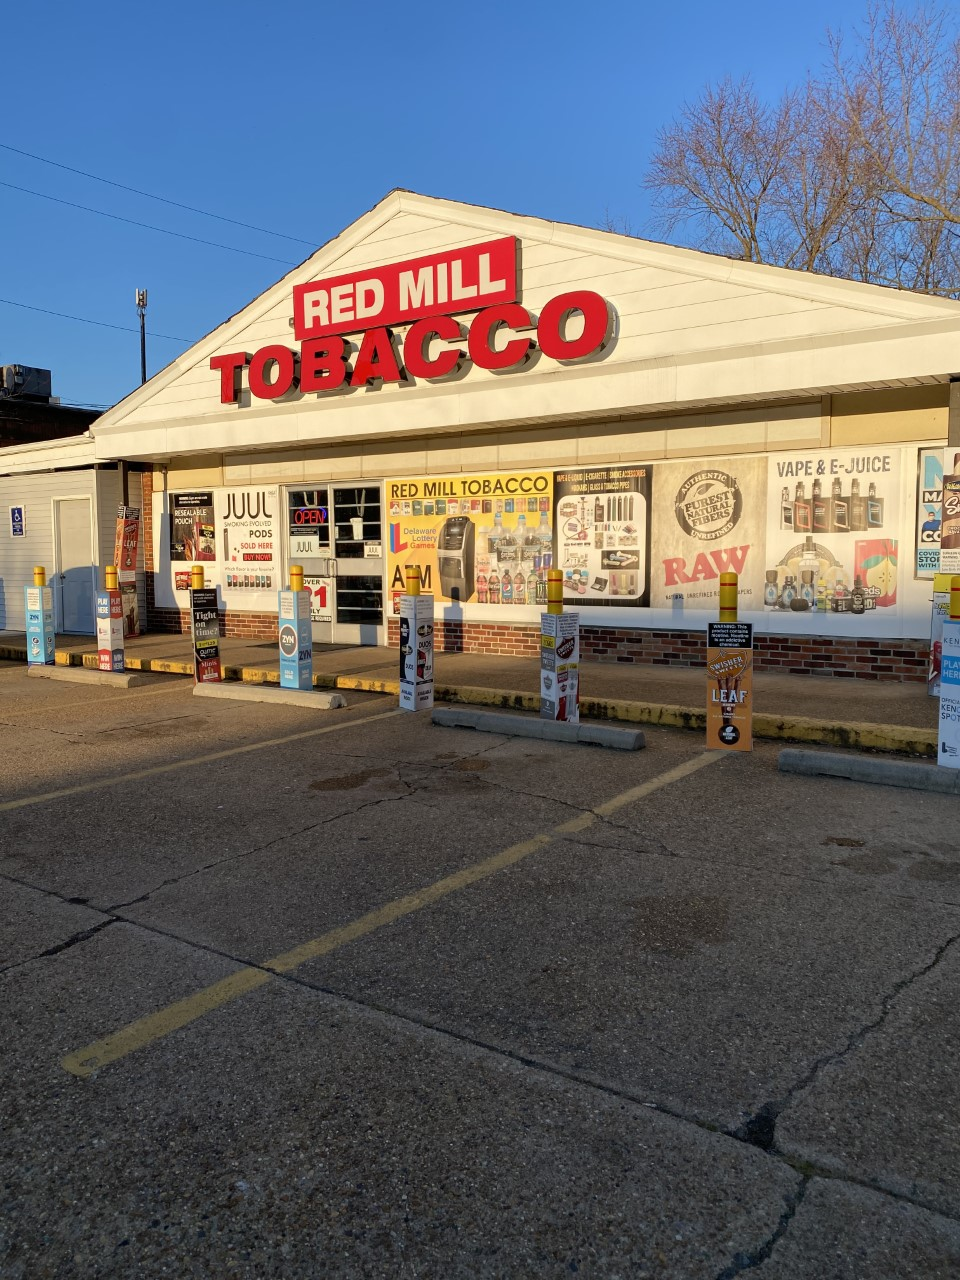 Red Mill Tobacco